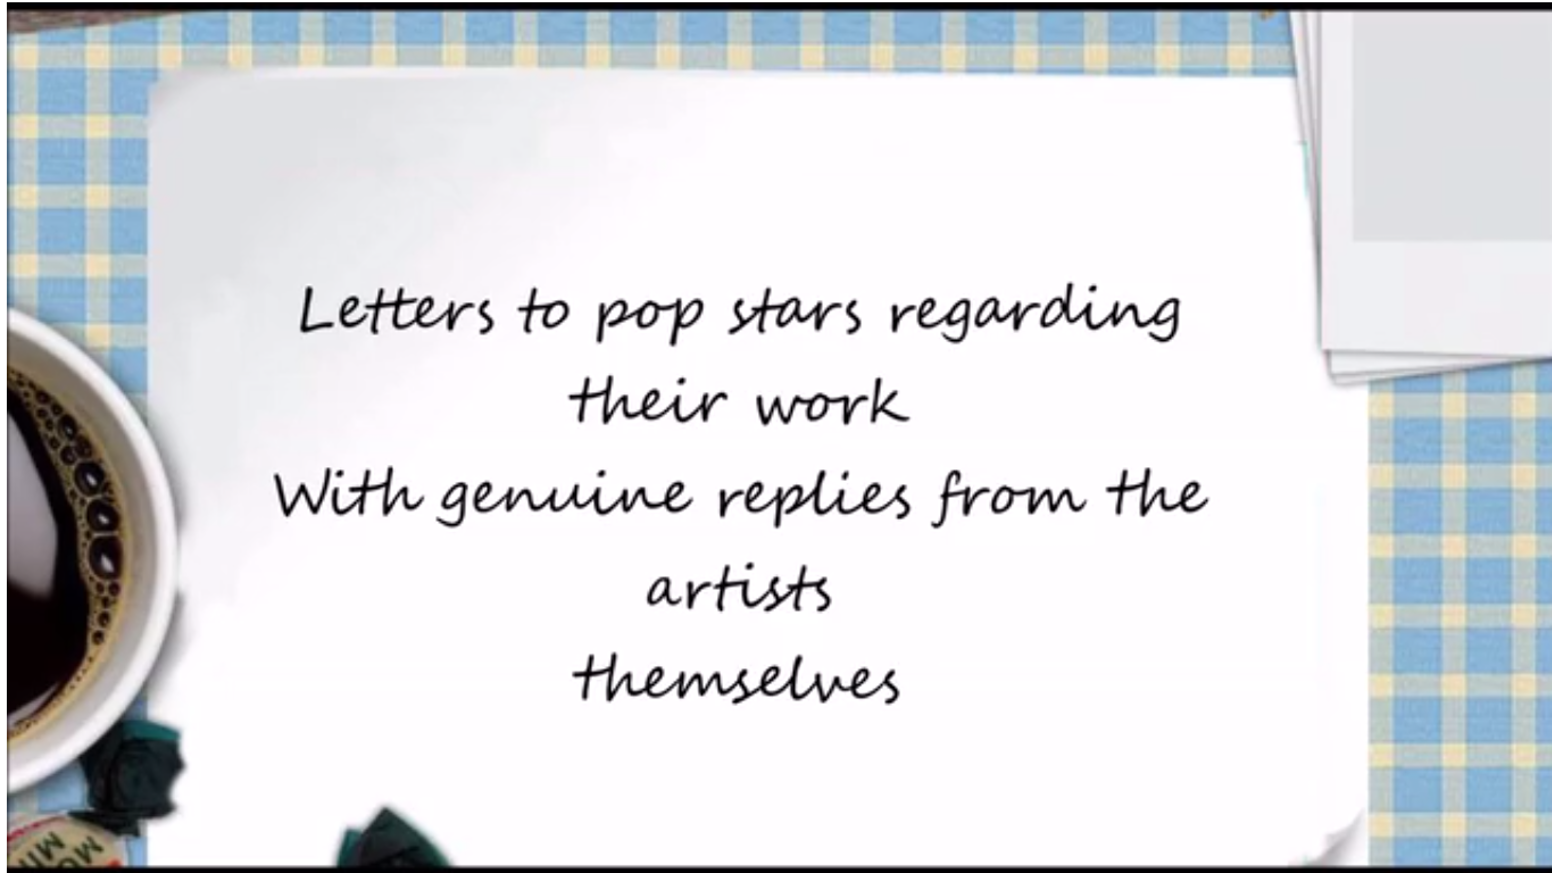 Letters To Pop Stars Regarding Their Work From A Retired Member Of The Public With Genuine